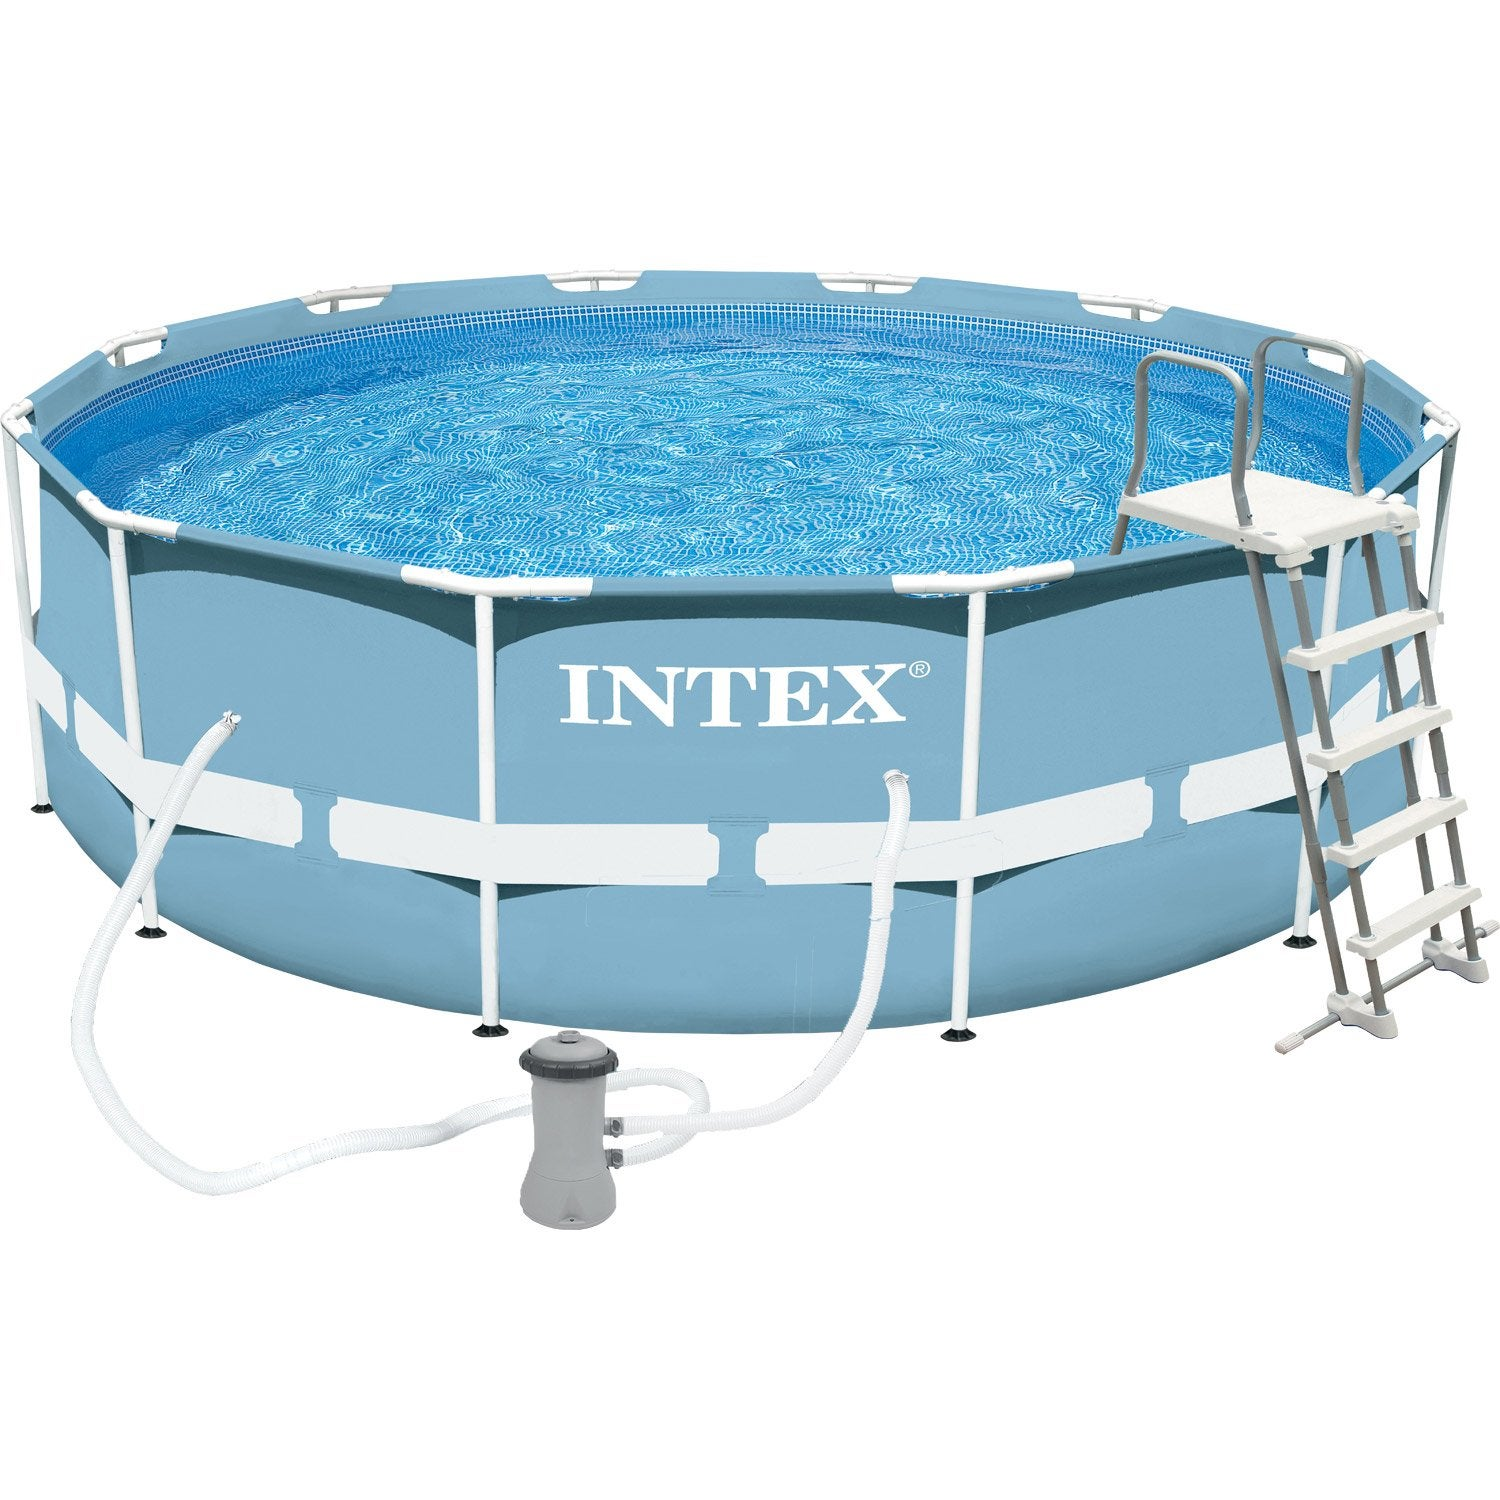 Piscine hors sol autoportante tubulaire prism frame intex - Piscine hors sol intex ...